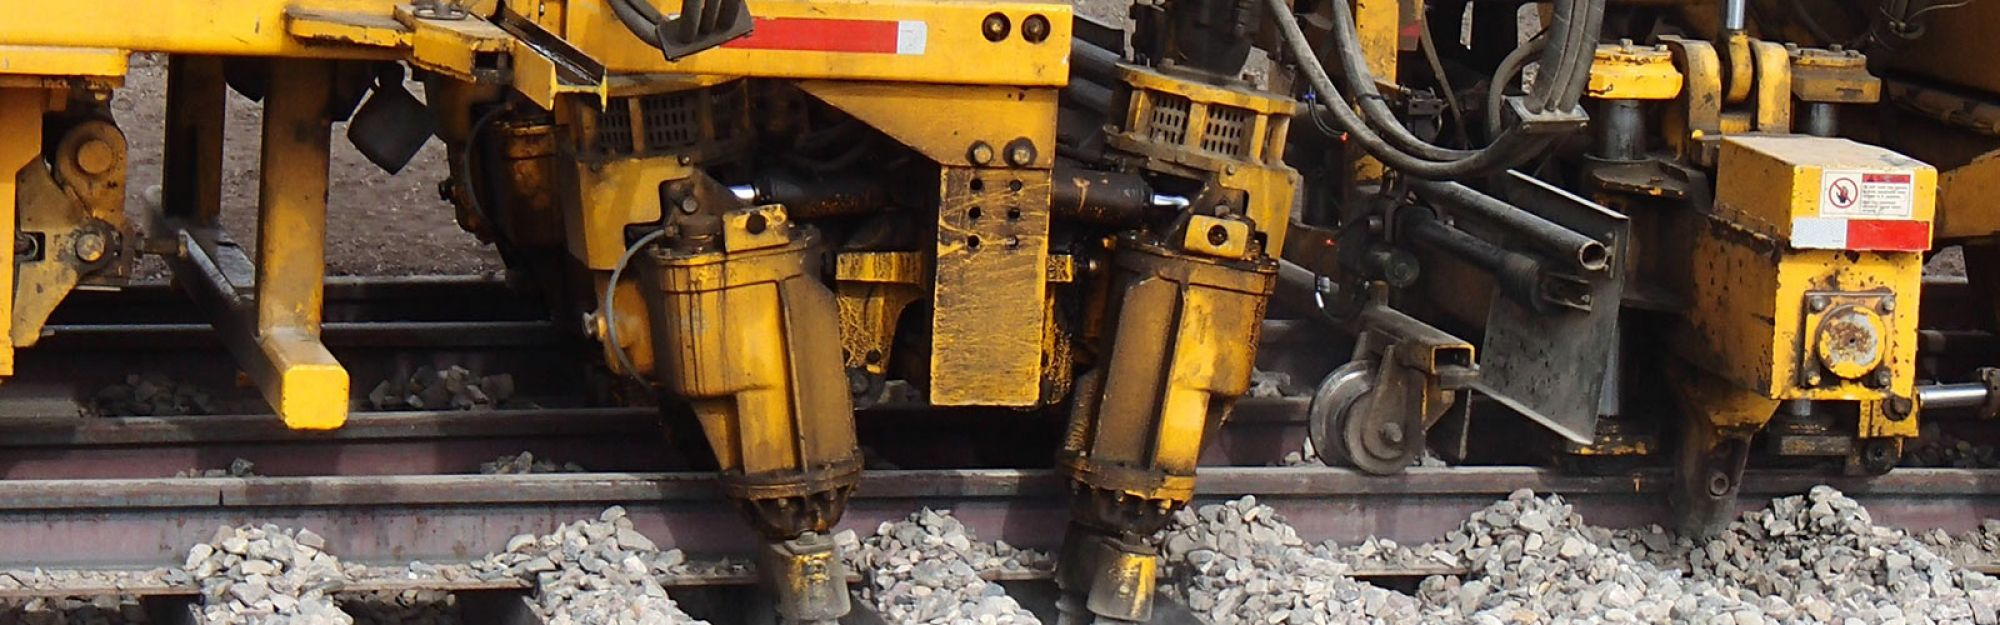 2.3.6 Road Rail Equipment